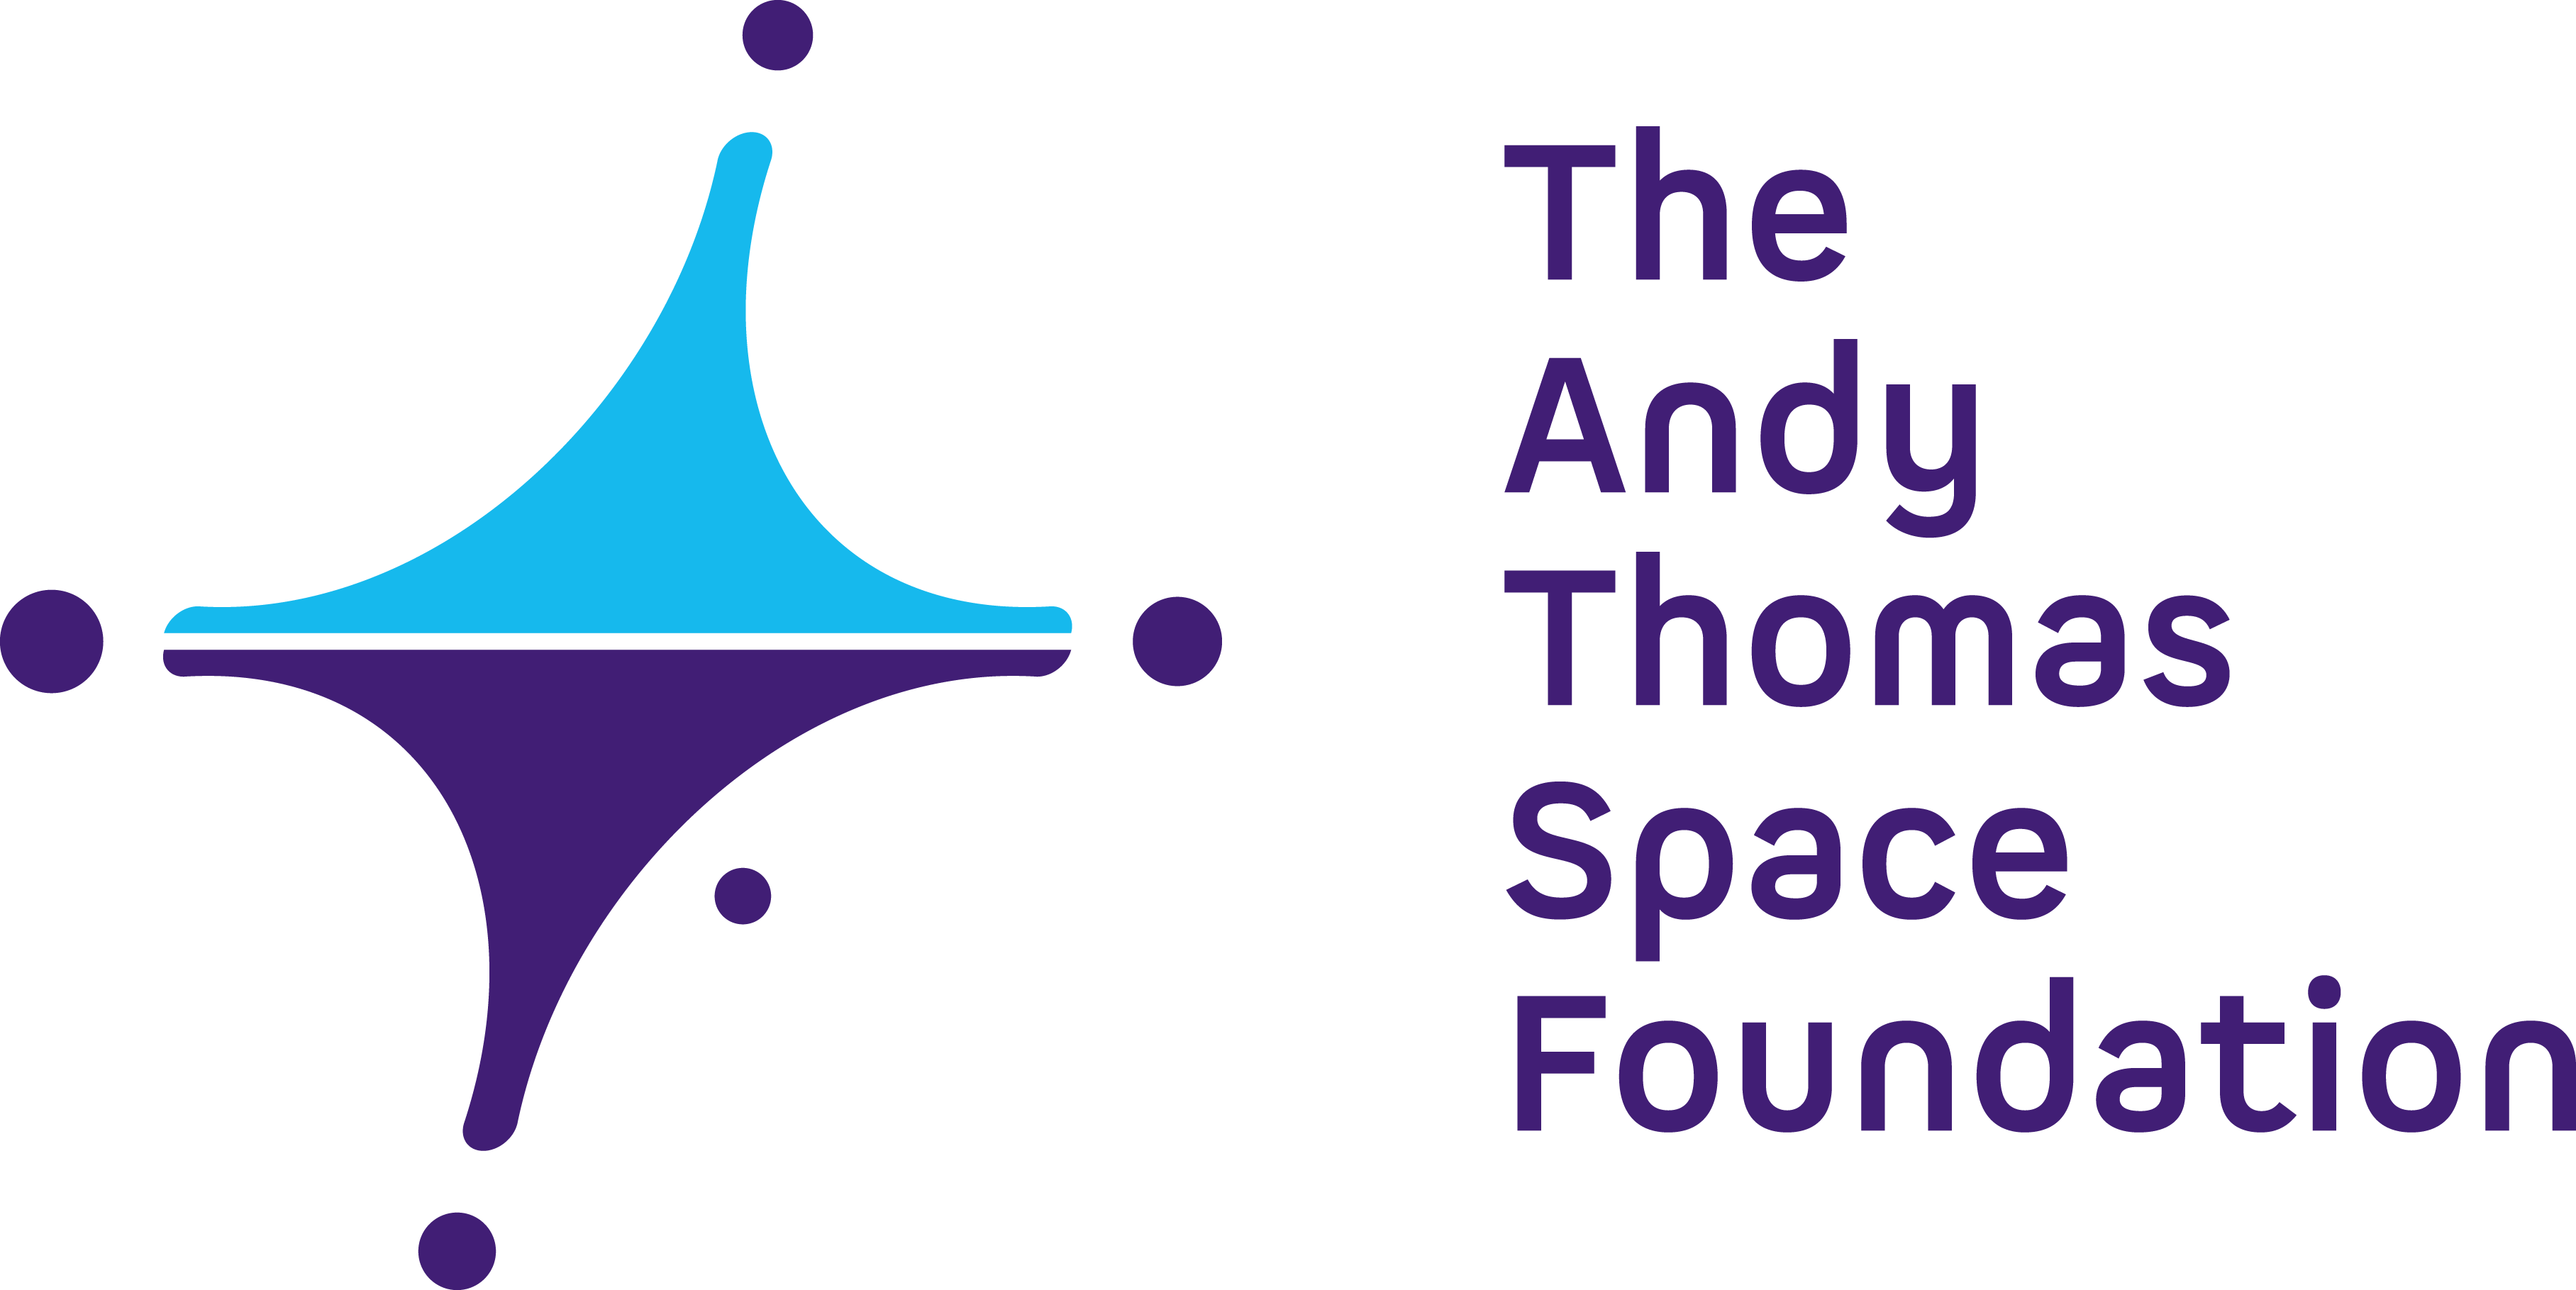 The Andy Thomas Foundation